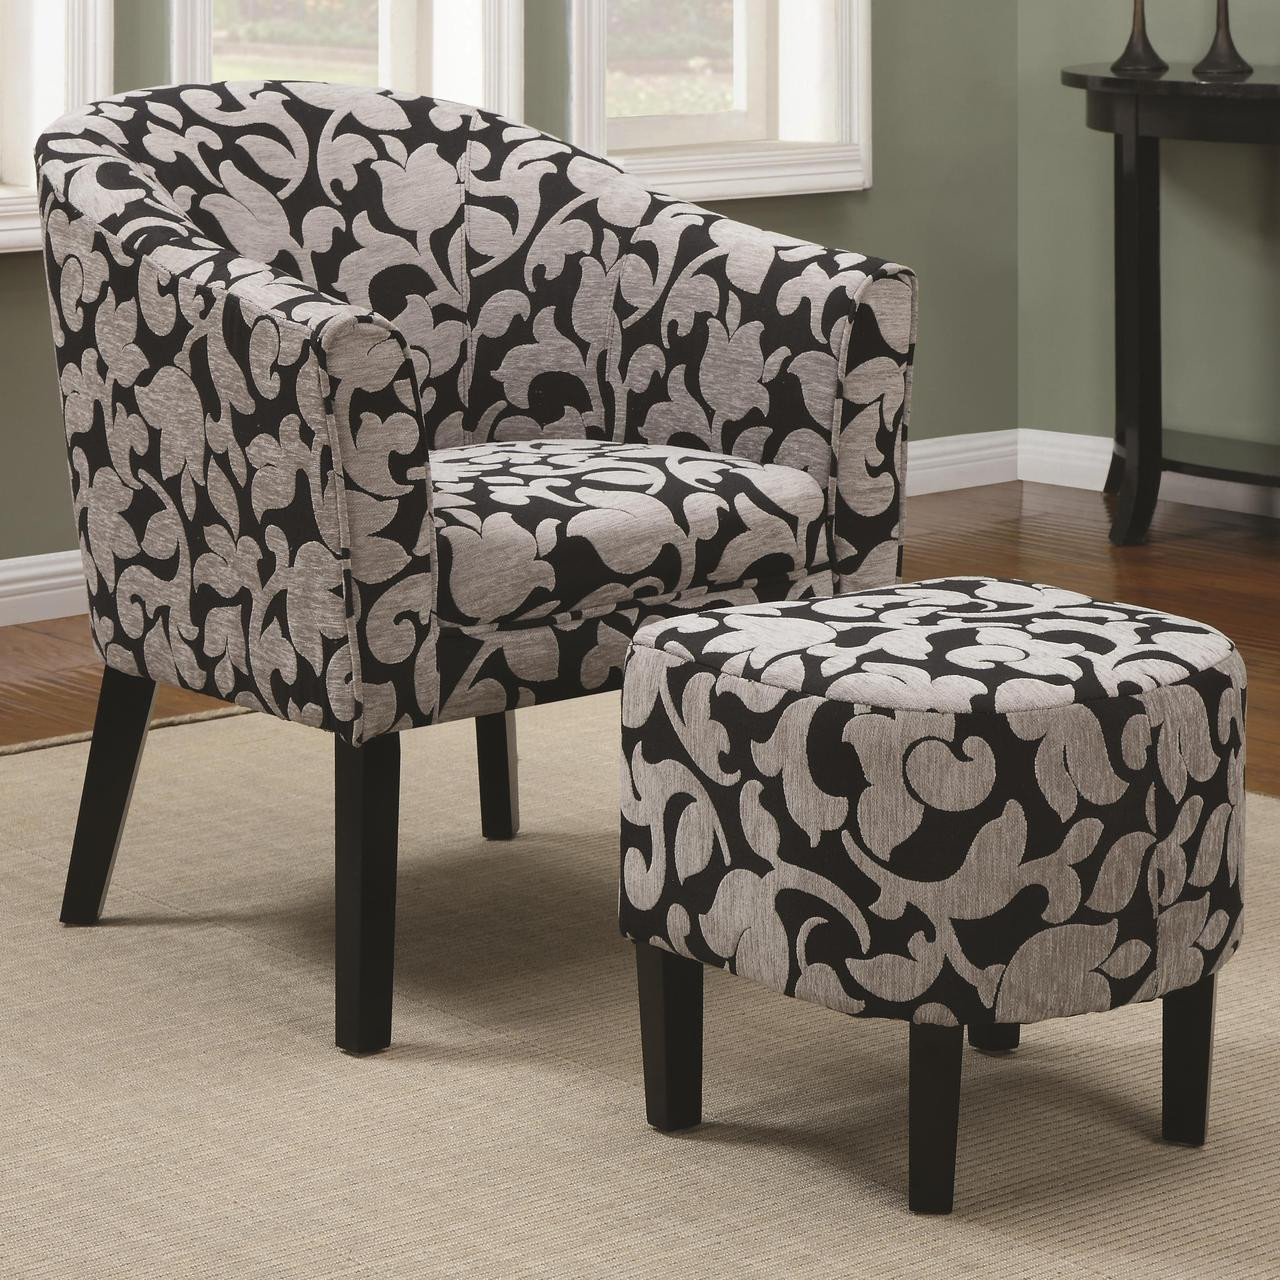 Cambria Charcoal Floral Arm Chair With Ottoman Woven Fabric Cb Furniture